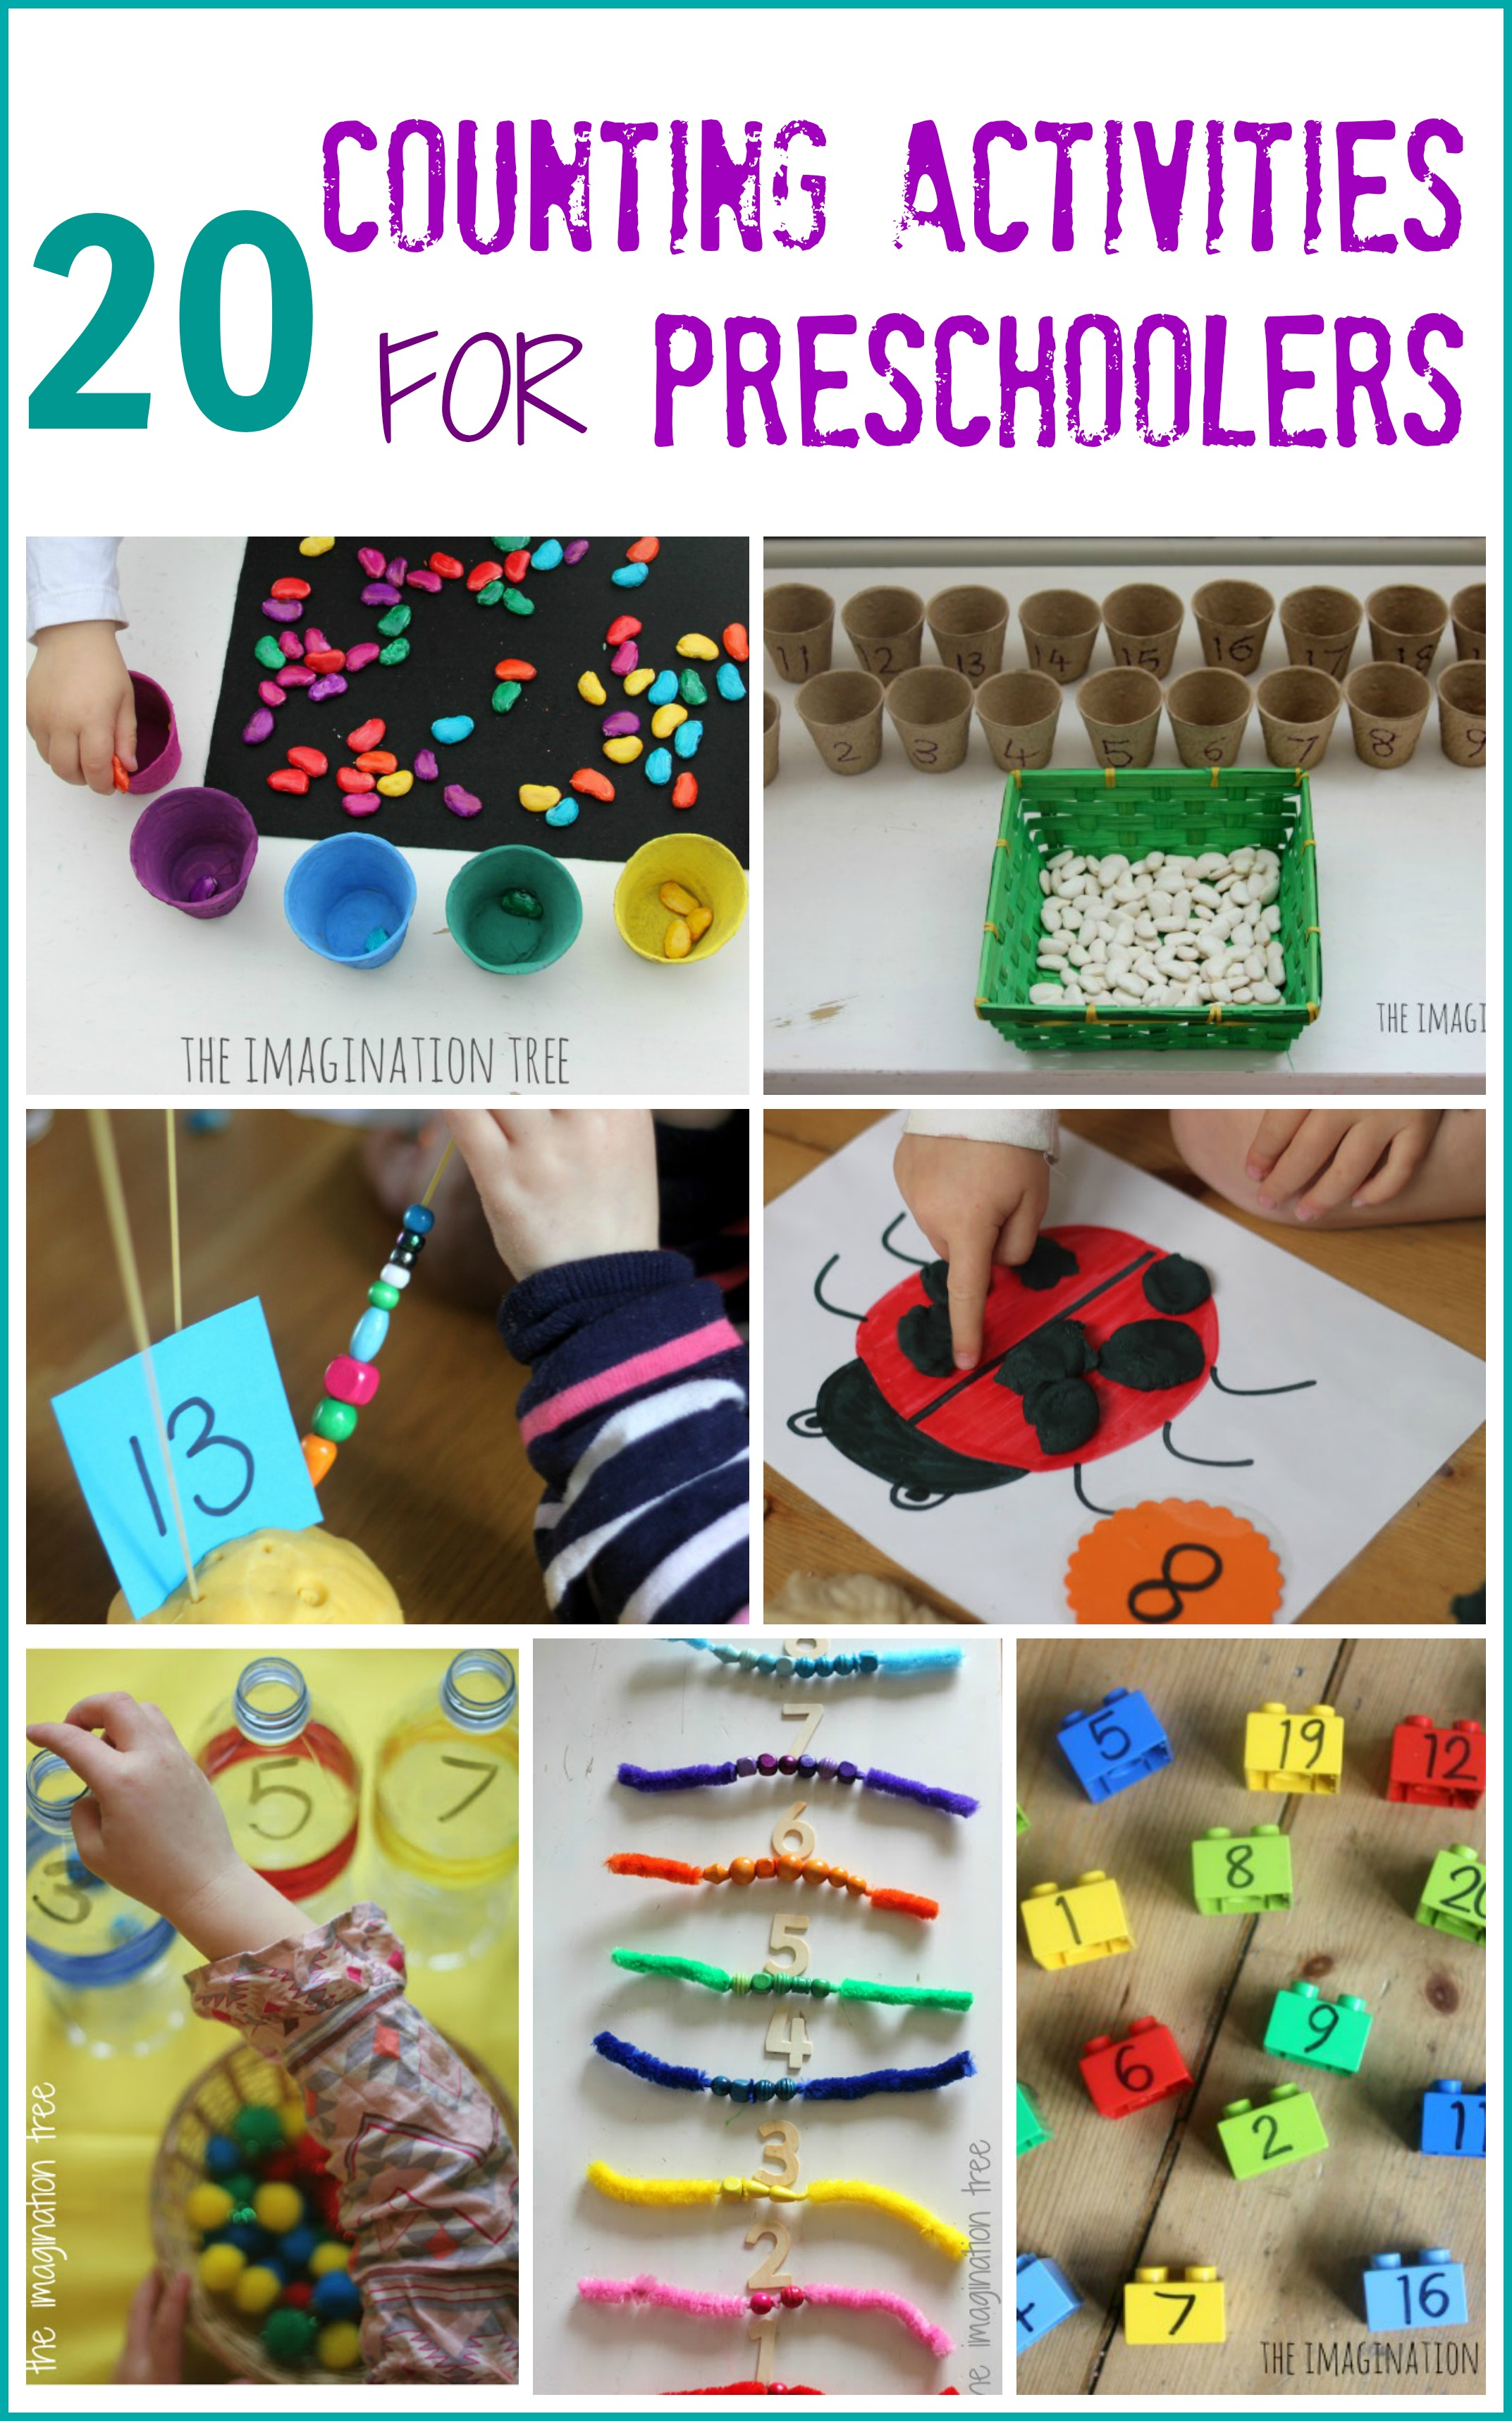 Worksheet Counting Activity For Preschool 20 counting activities for preschoolers the imagination tree preschoolers